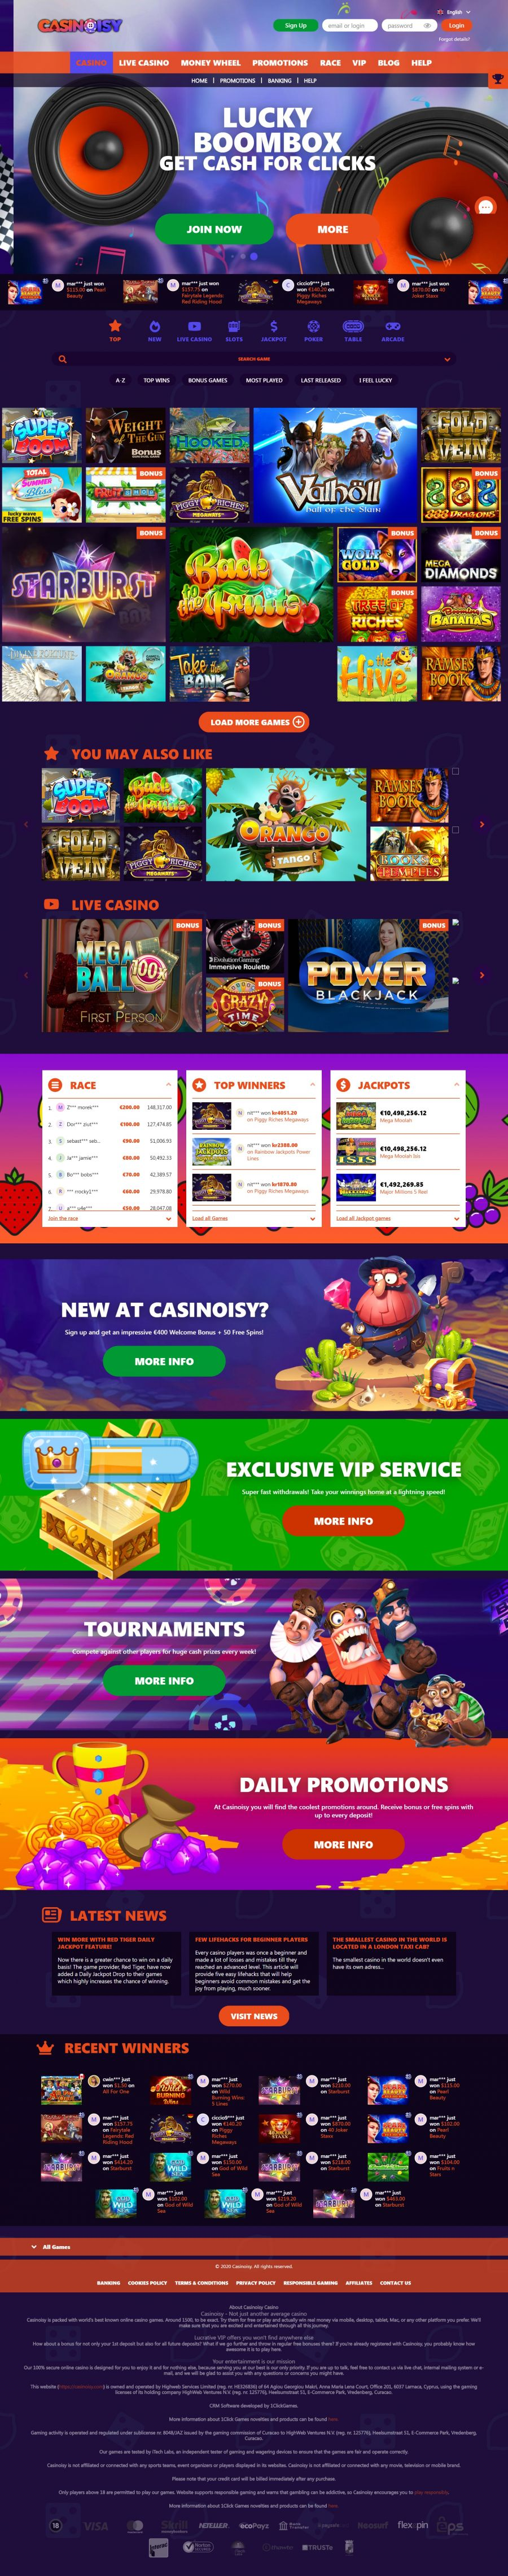 Casinoisy  screenshot